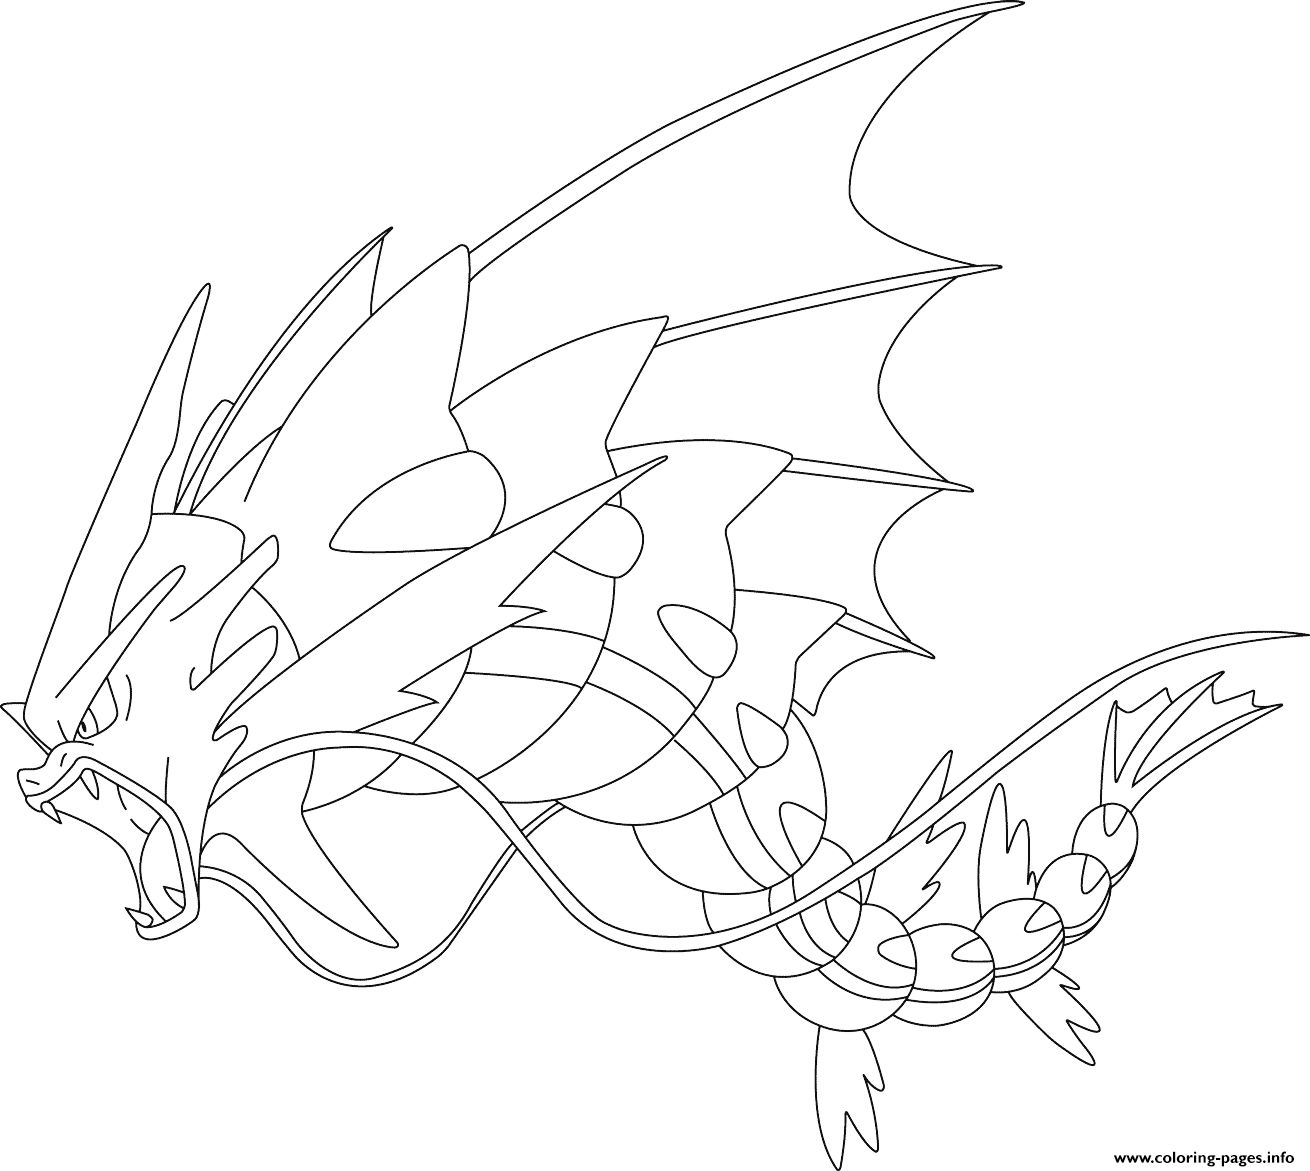 Coloring Pages Pokemon Mega Gyarados Pokemon Coloring Pages Printable Entitlementtrap Com Pokemon Coloring Pages Pokemon Coloring Pokemon Coloring Sheets